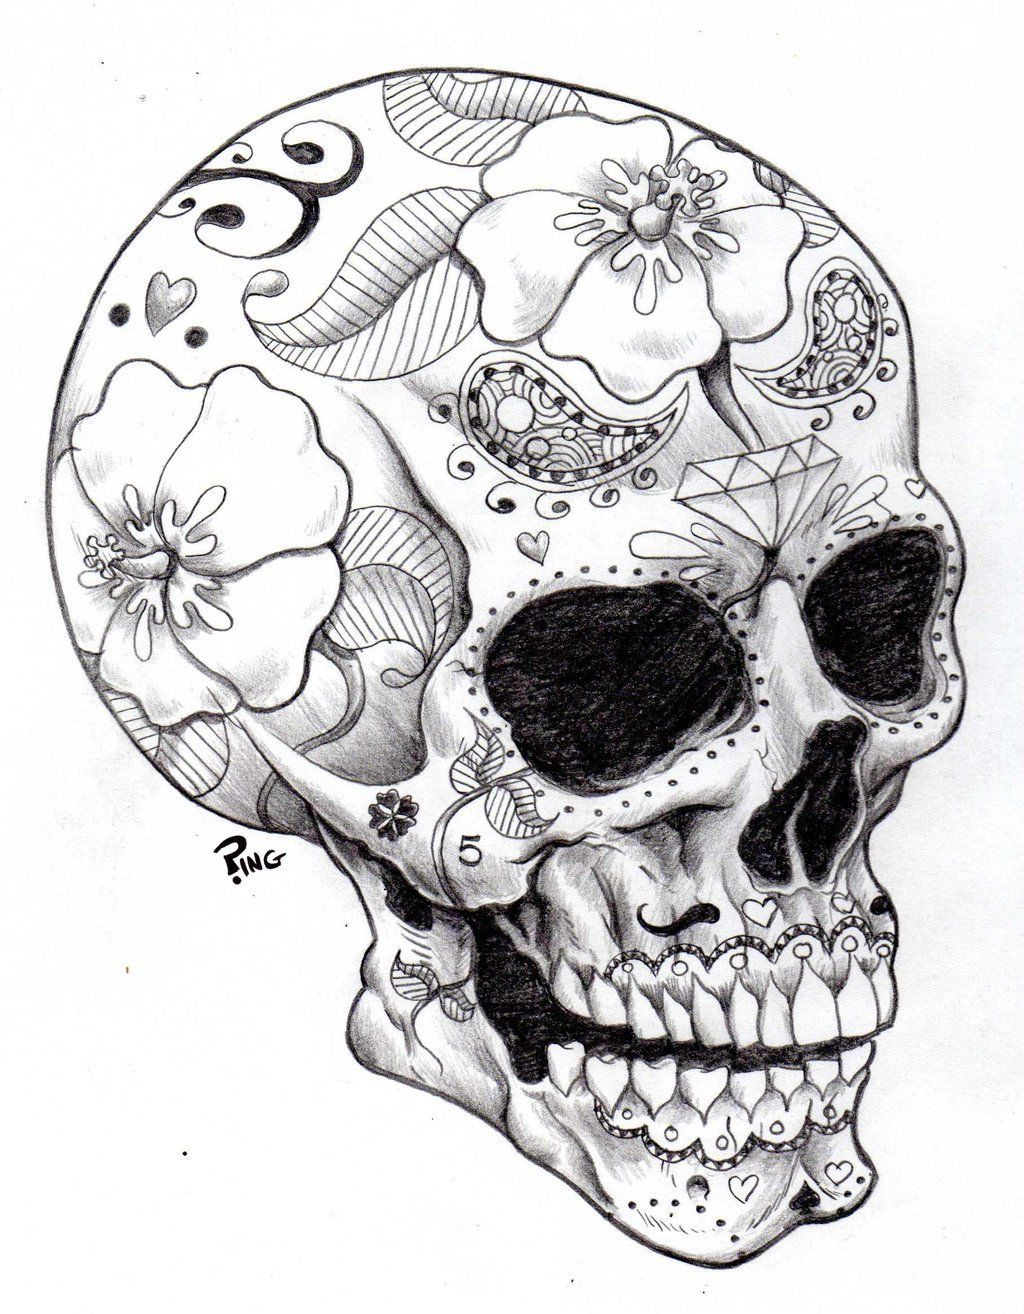 Awesome coloring books for adults - Awesome Adult Coloring Books Printable On Pinterest Coloring Pages